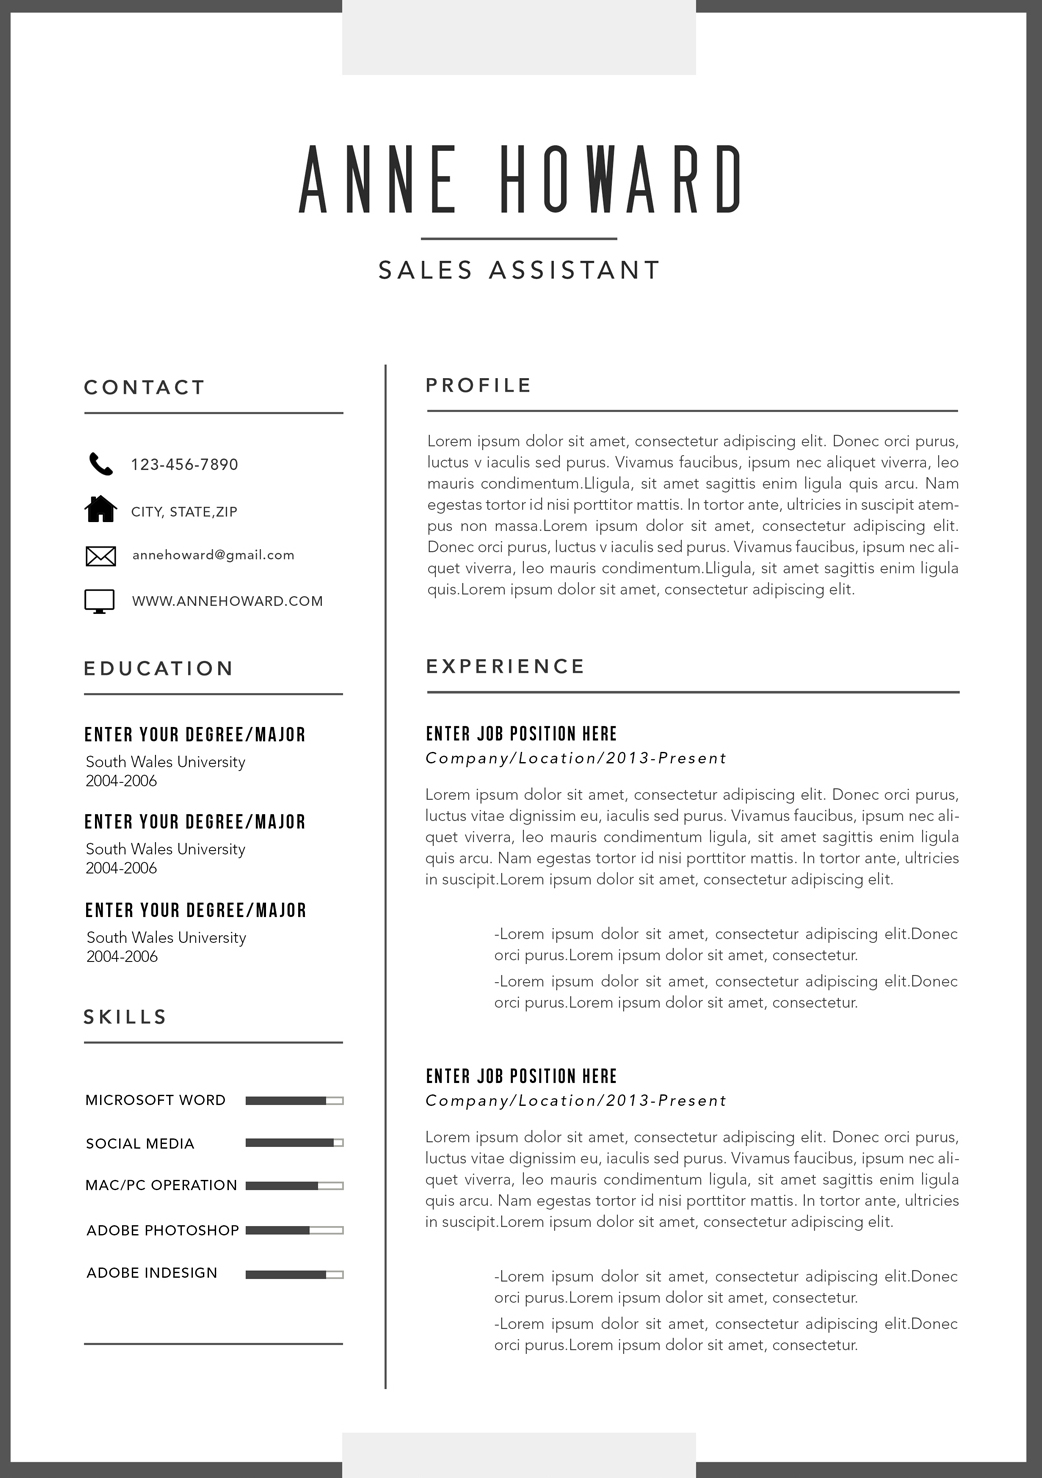 Awesome Business Resume Template Contemporary Resume #0: modern classic resume template